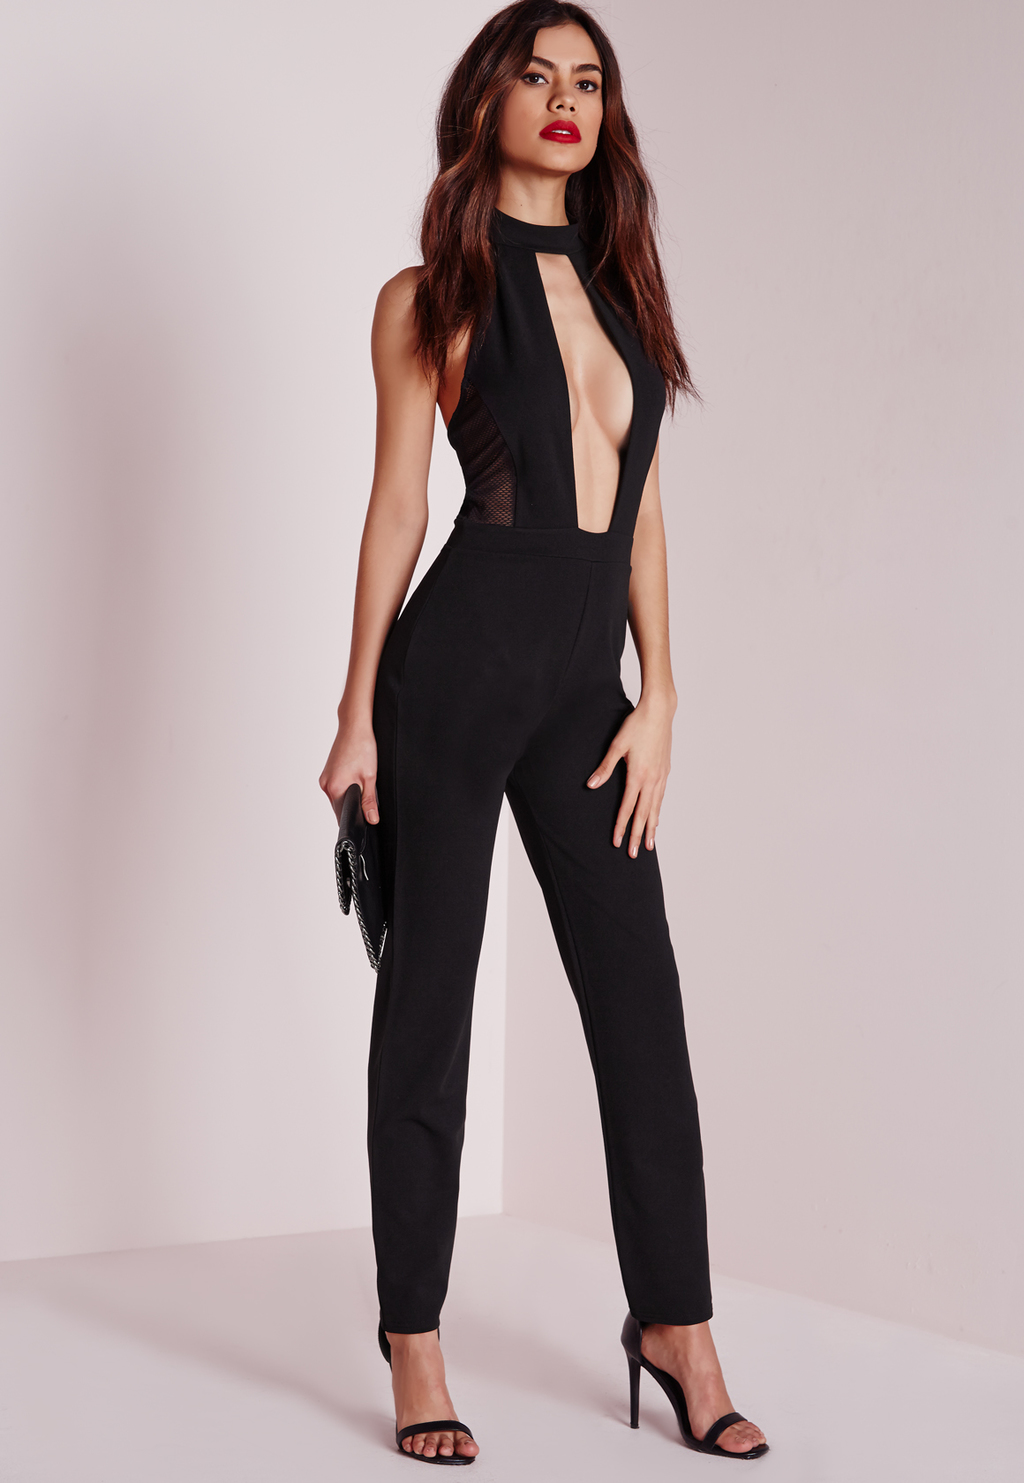 Mesh Extreme Plunge Jumpsuit Black, Black - length: standard; neckline: plunge; fit: tailored/fitted; pattern: plain; sleeve style: sleeveless; waist detail: fitted waist; predominant colour: black; occasions: evening; fibres: polyester/polyamide - stretch; sleeve length: sleeveless; texture group: crepes; style: jumpsuit; pattern type: fabric; season: a/w 2015; wardrobe: event